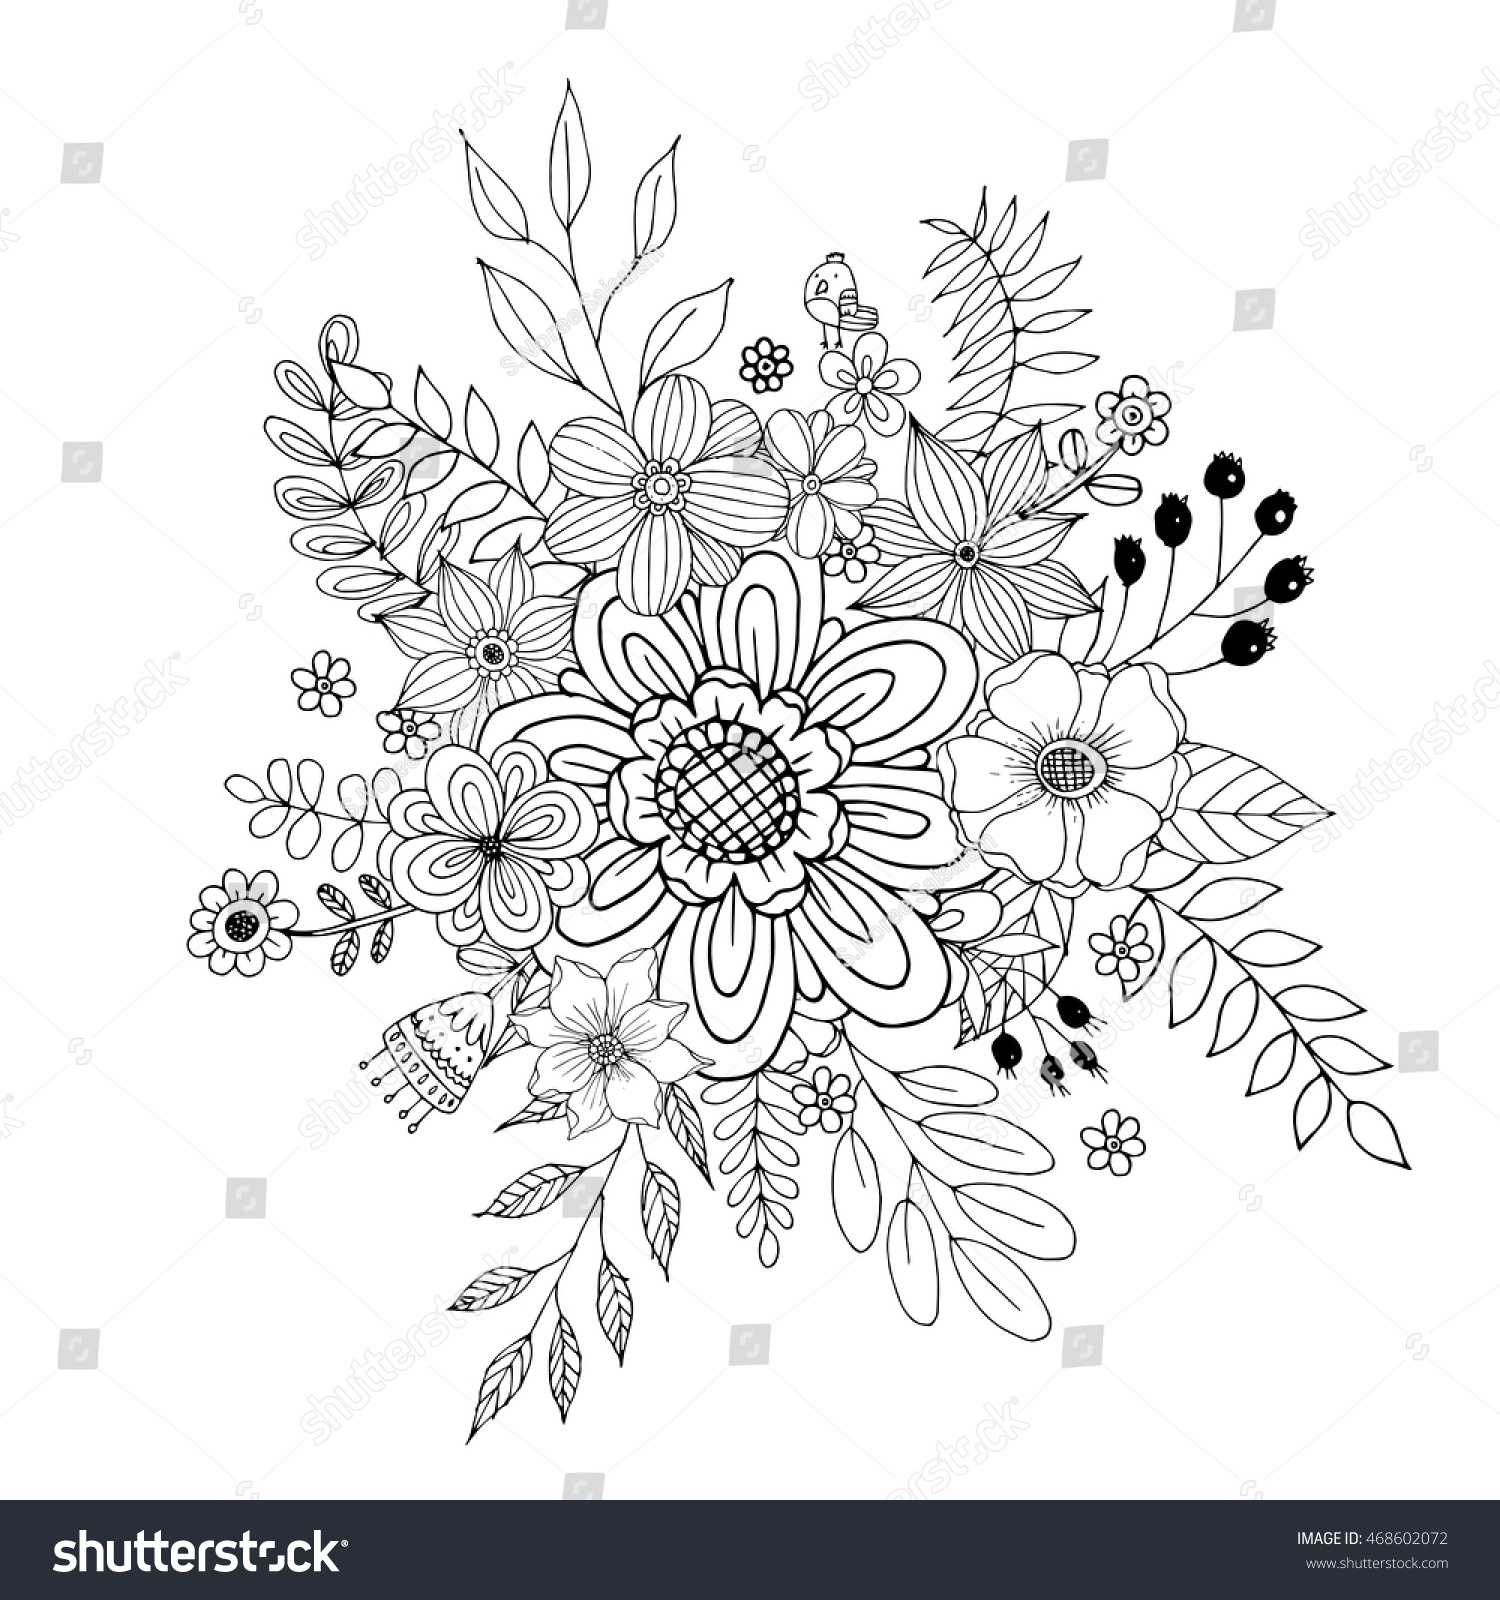 Flower Doodle Vector Coloring Page Doodle Stock Photo (Photo, Vector ...